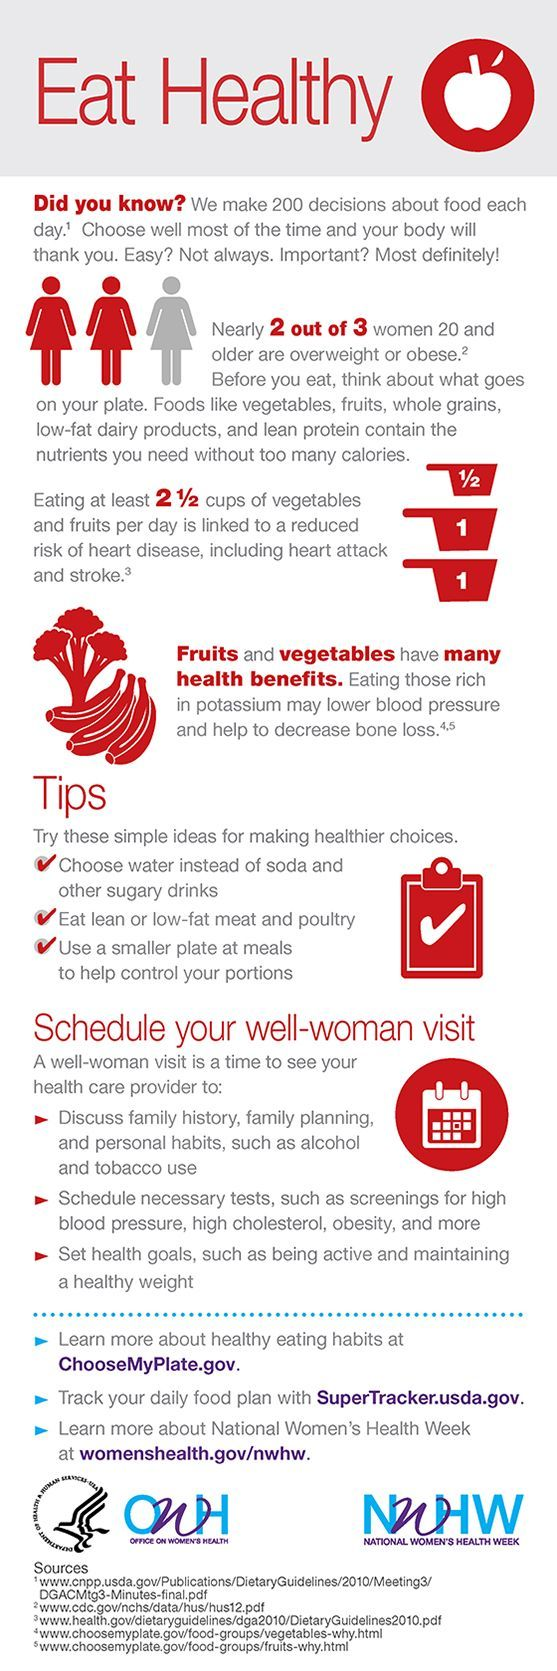 Did you know eating 2 1/2 cups of vegetables and fruits per day is linked to a r…